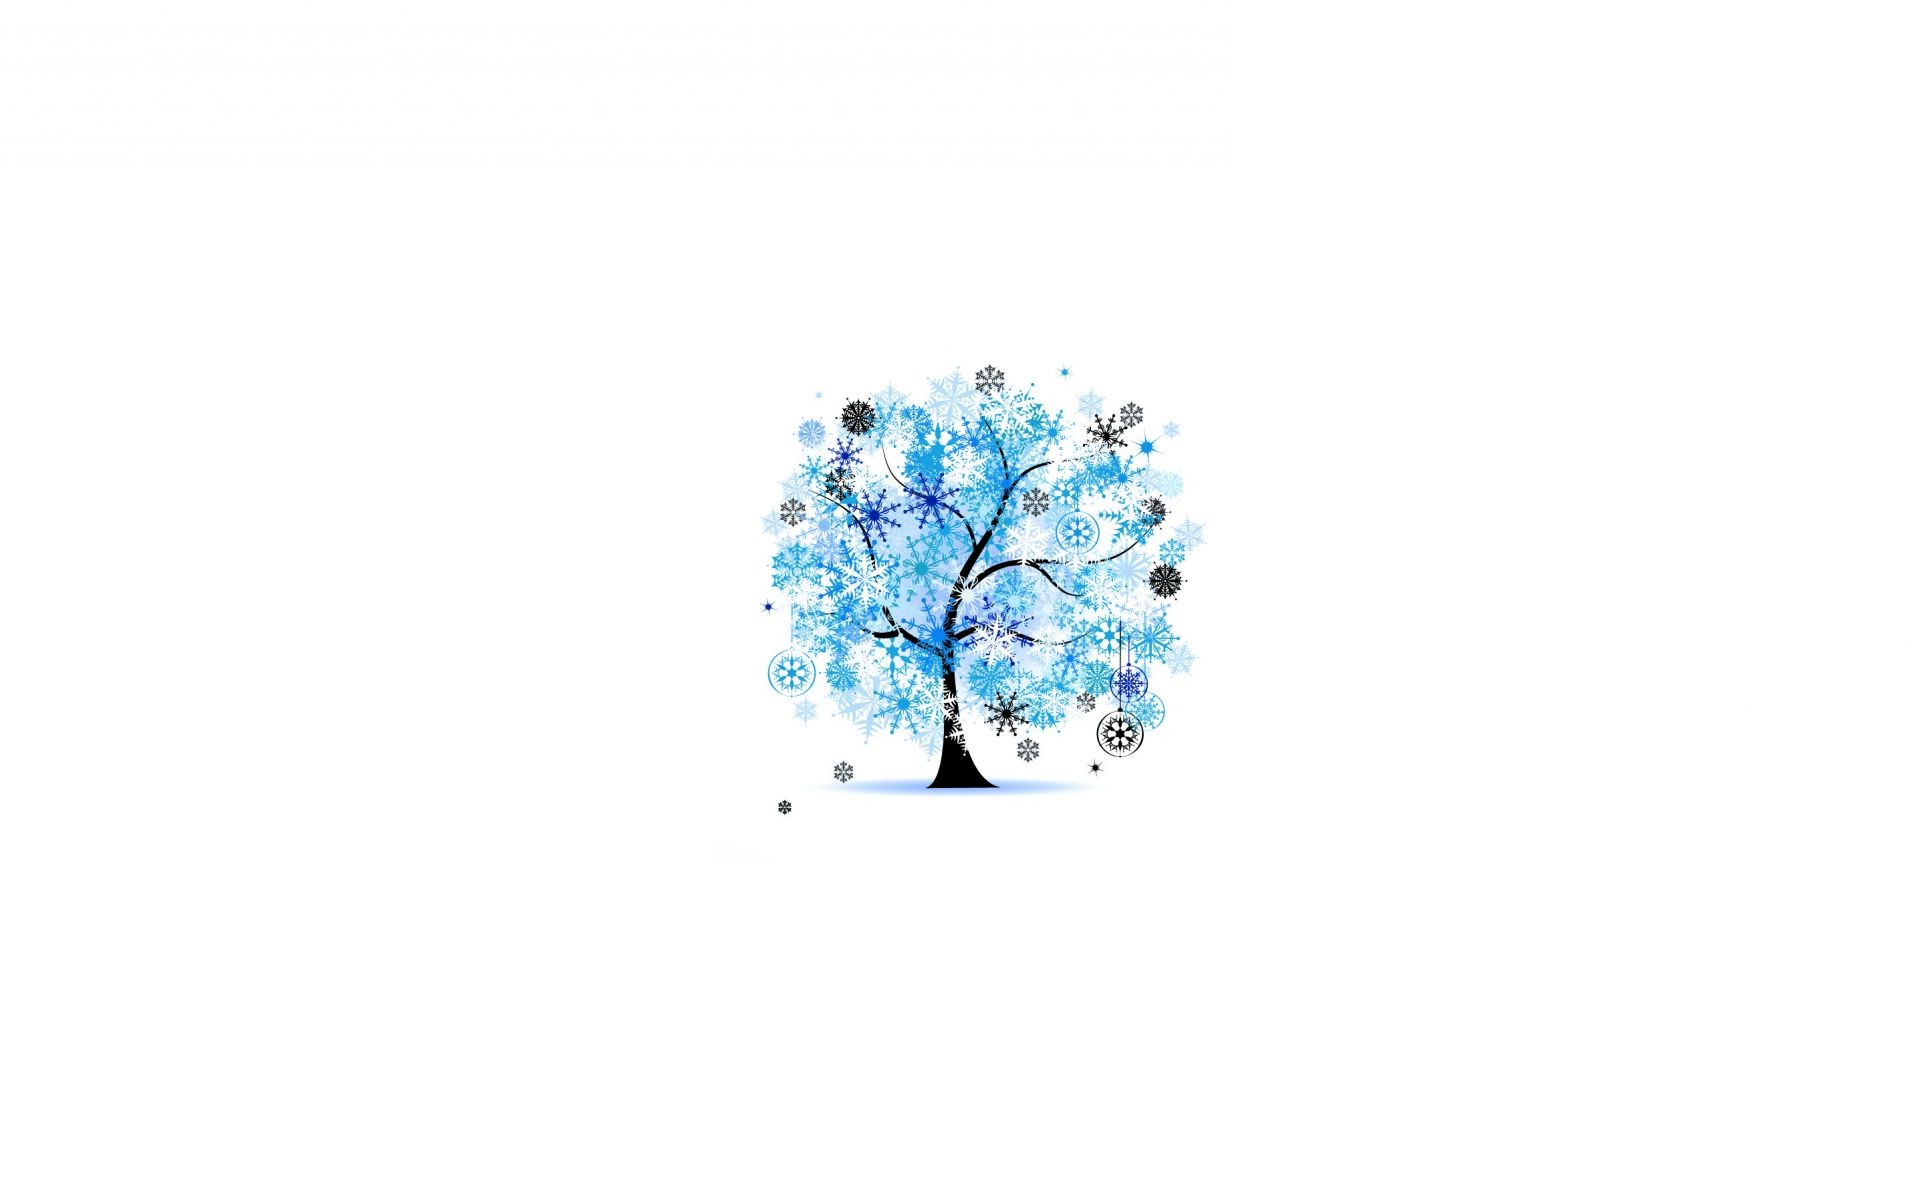 minimalism illustration desktop nature bright art decoration isolated design shape